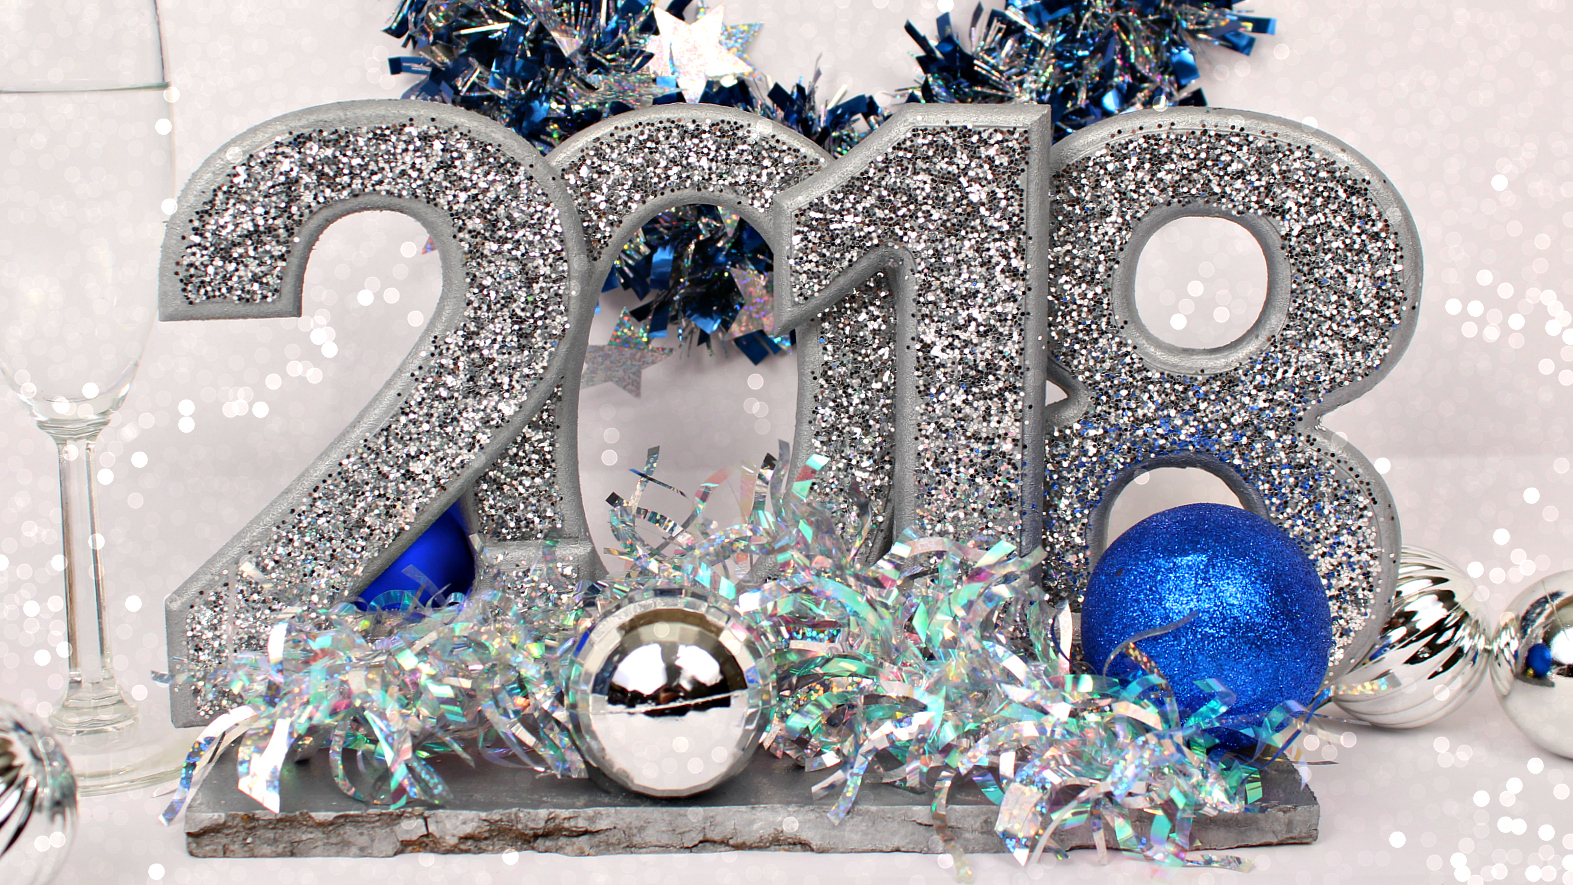 Mark Montano: New Year's Eve Centerpieces